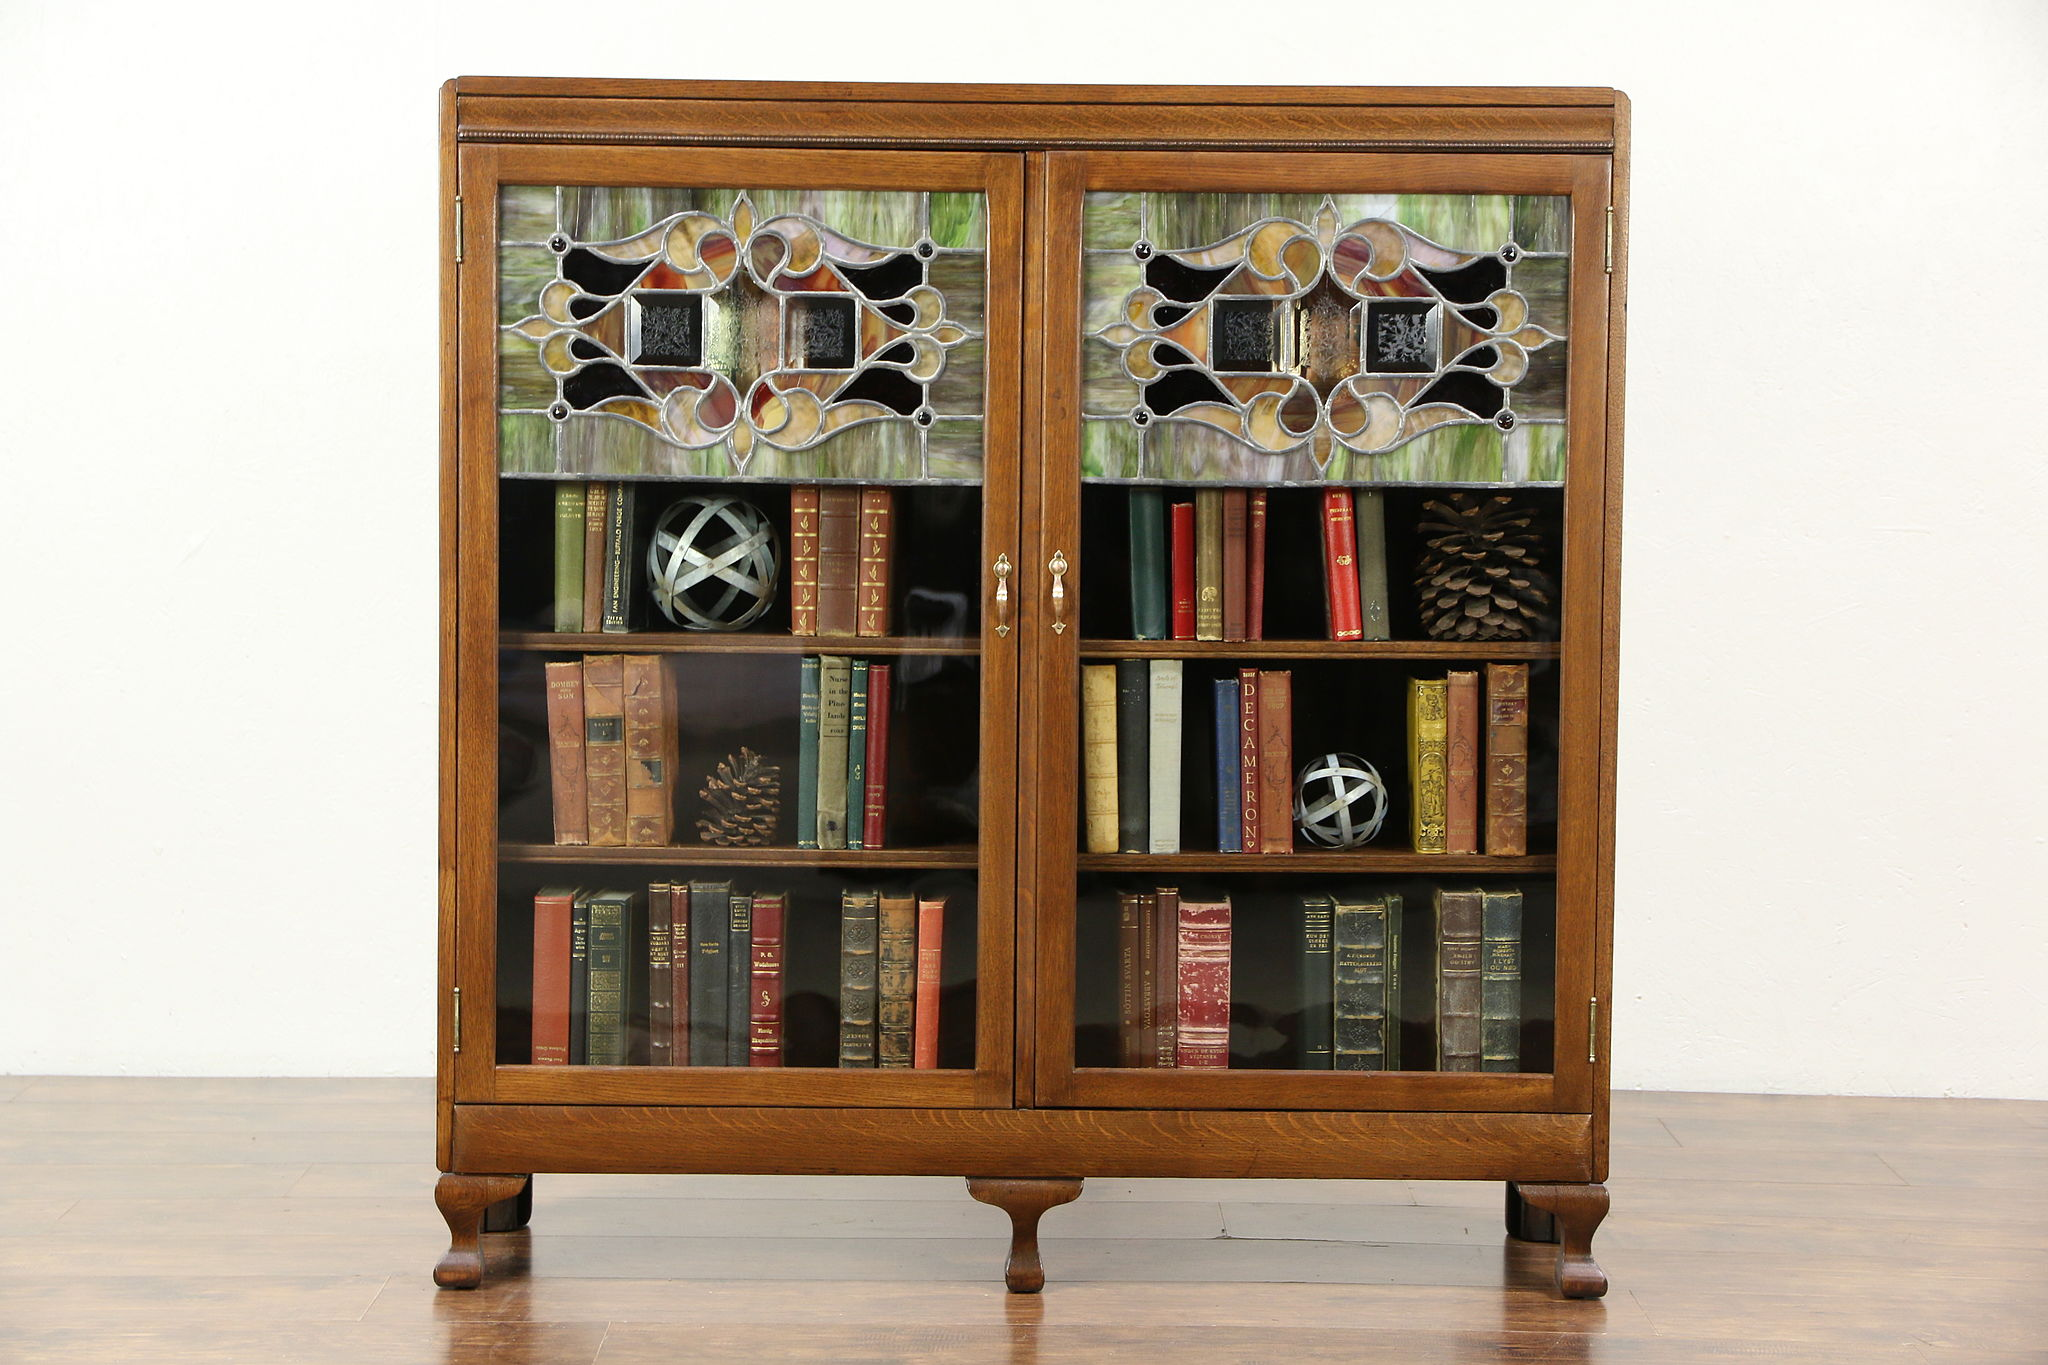 liances seaweed wood cupboard gl of cabinet wall stained using motif and storage ideas review full glass design door with made cherry kitchen doors tips